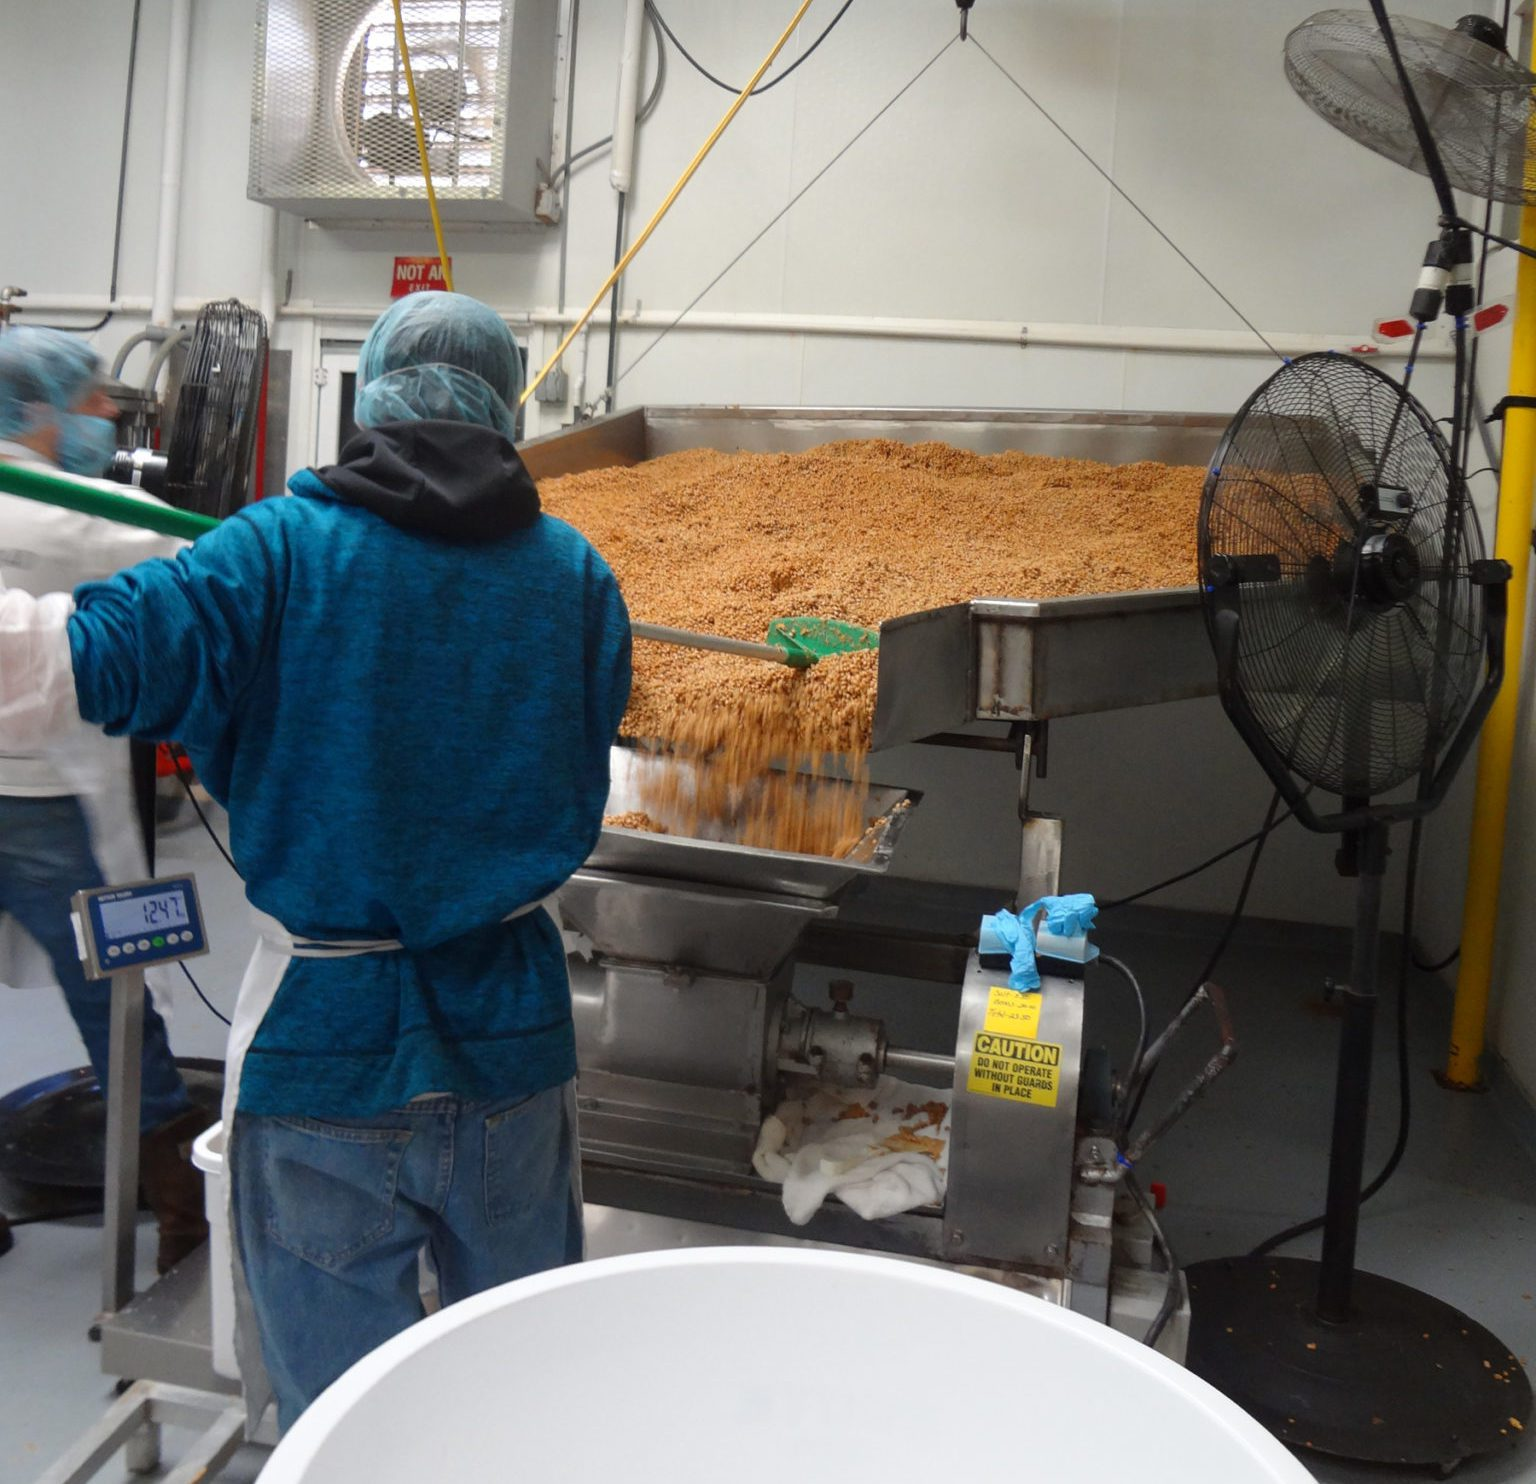 Miso Master Tour as seen on pixiespocket.com - An employee moves the soybeans used to create the miso paste.